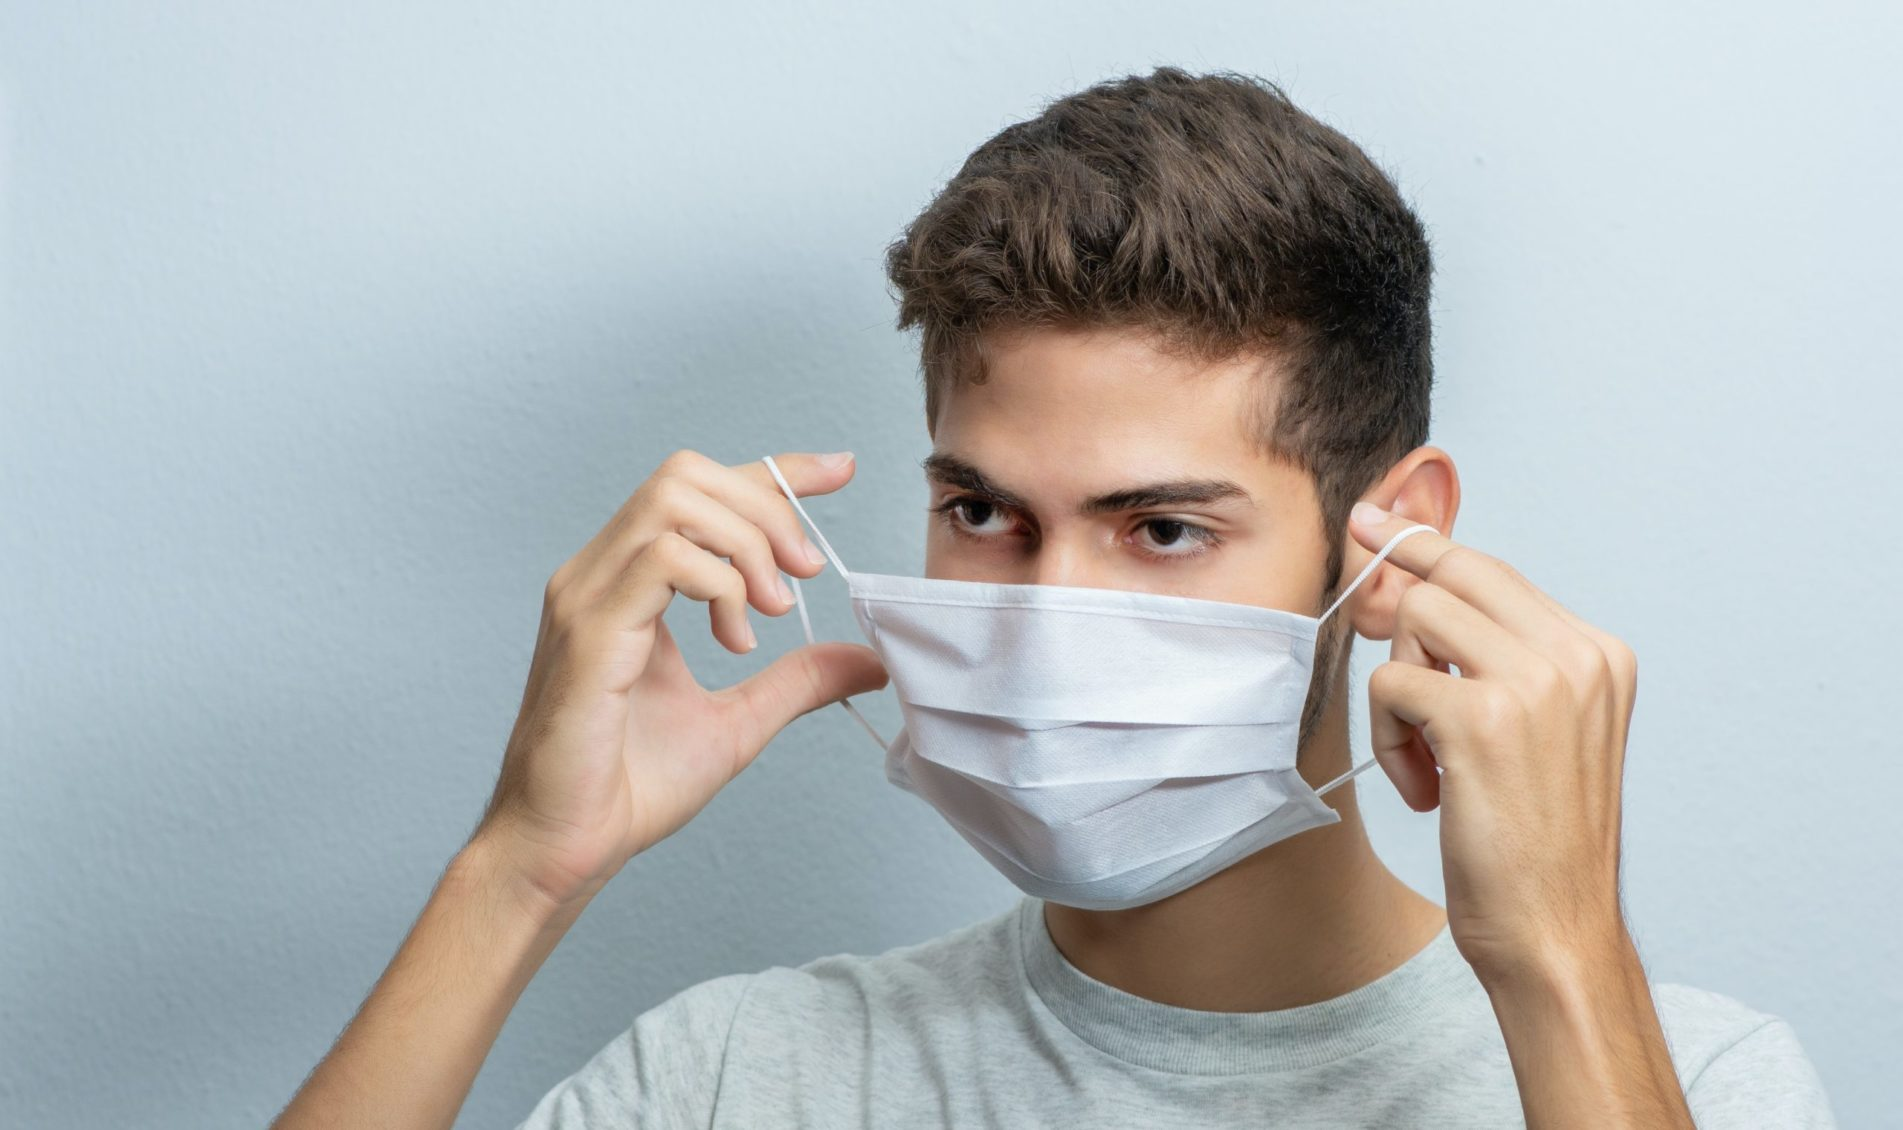 How Should I Properly Wear A Mask During COVID-19?